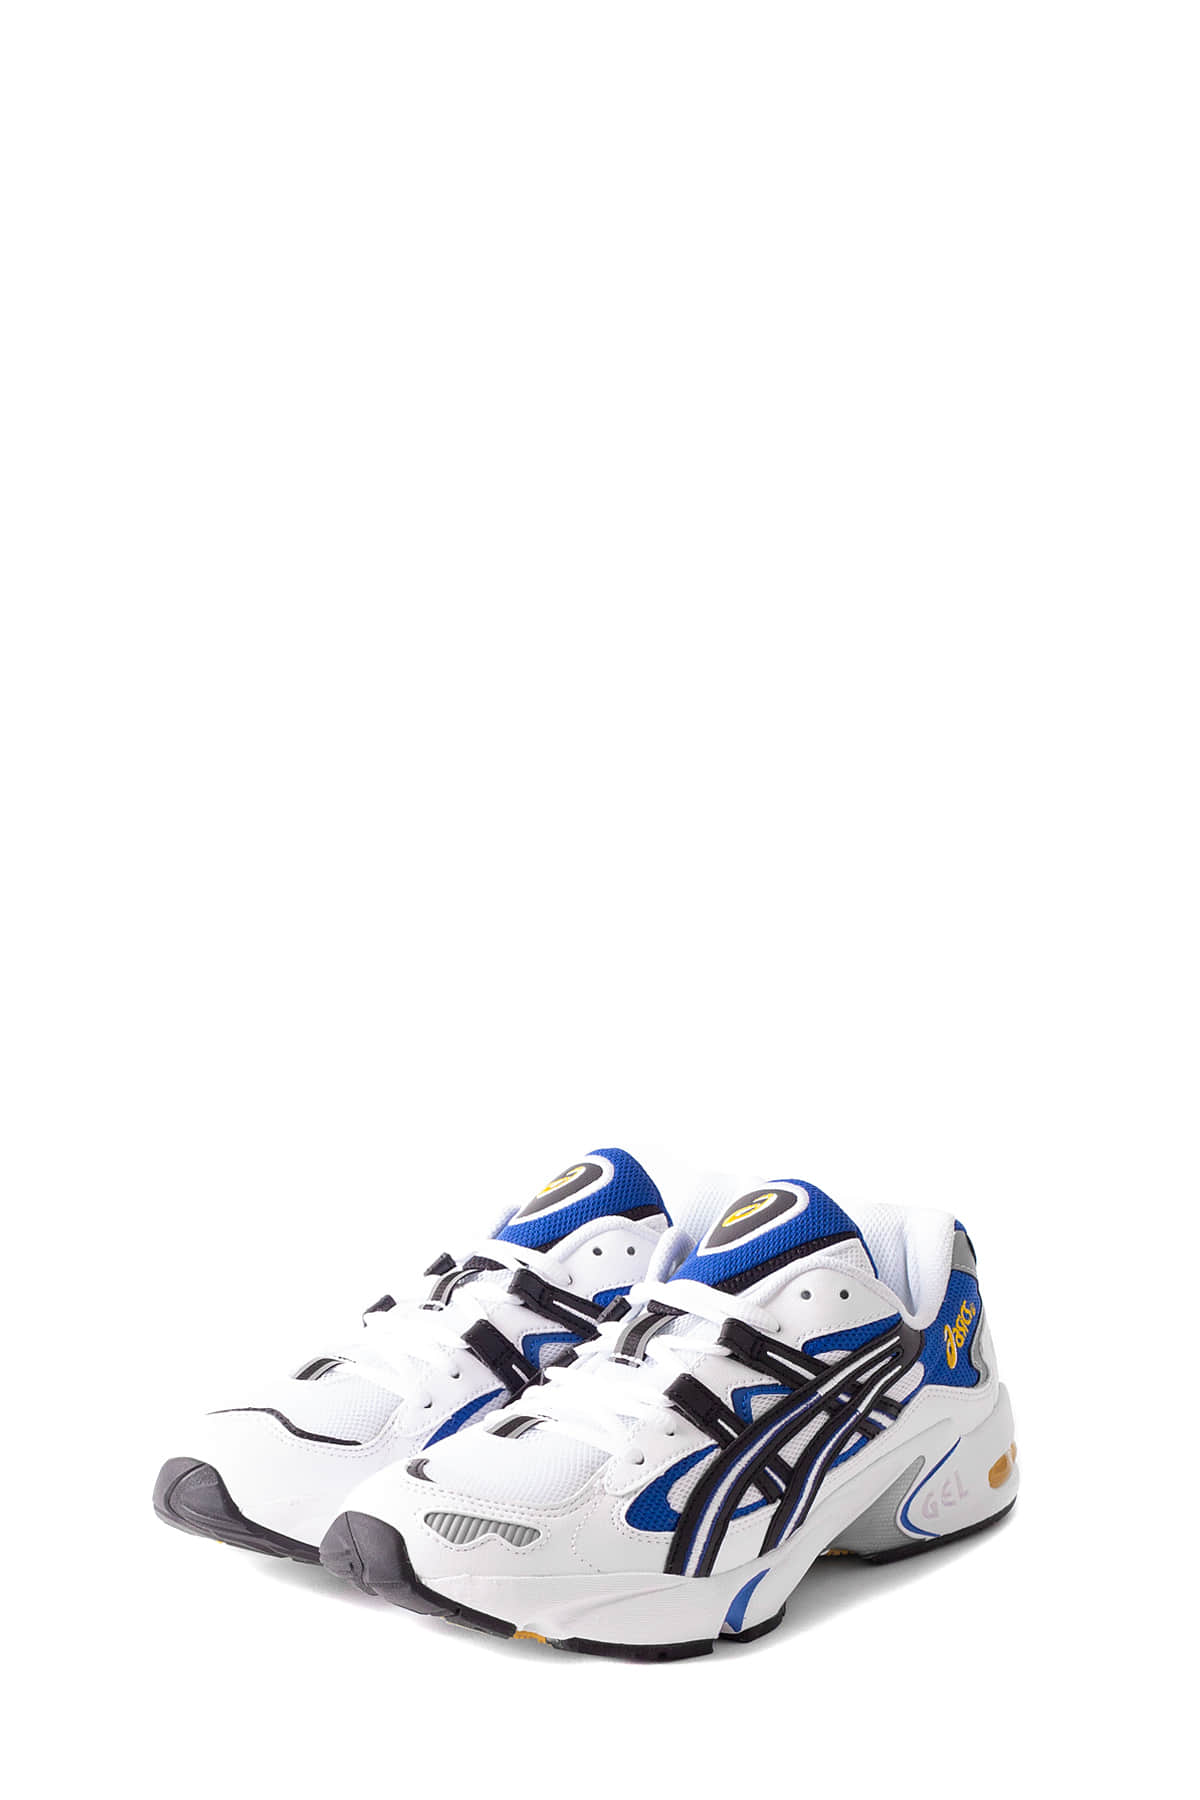 asics tiger : Gel-Kayano 5 OG (White / Black)